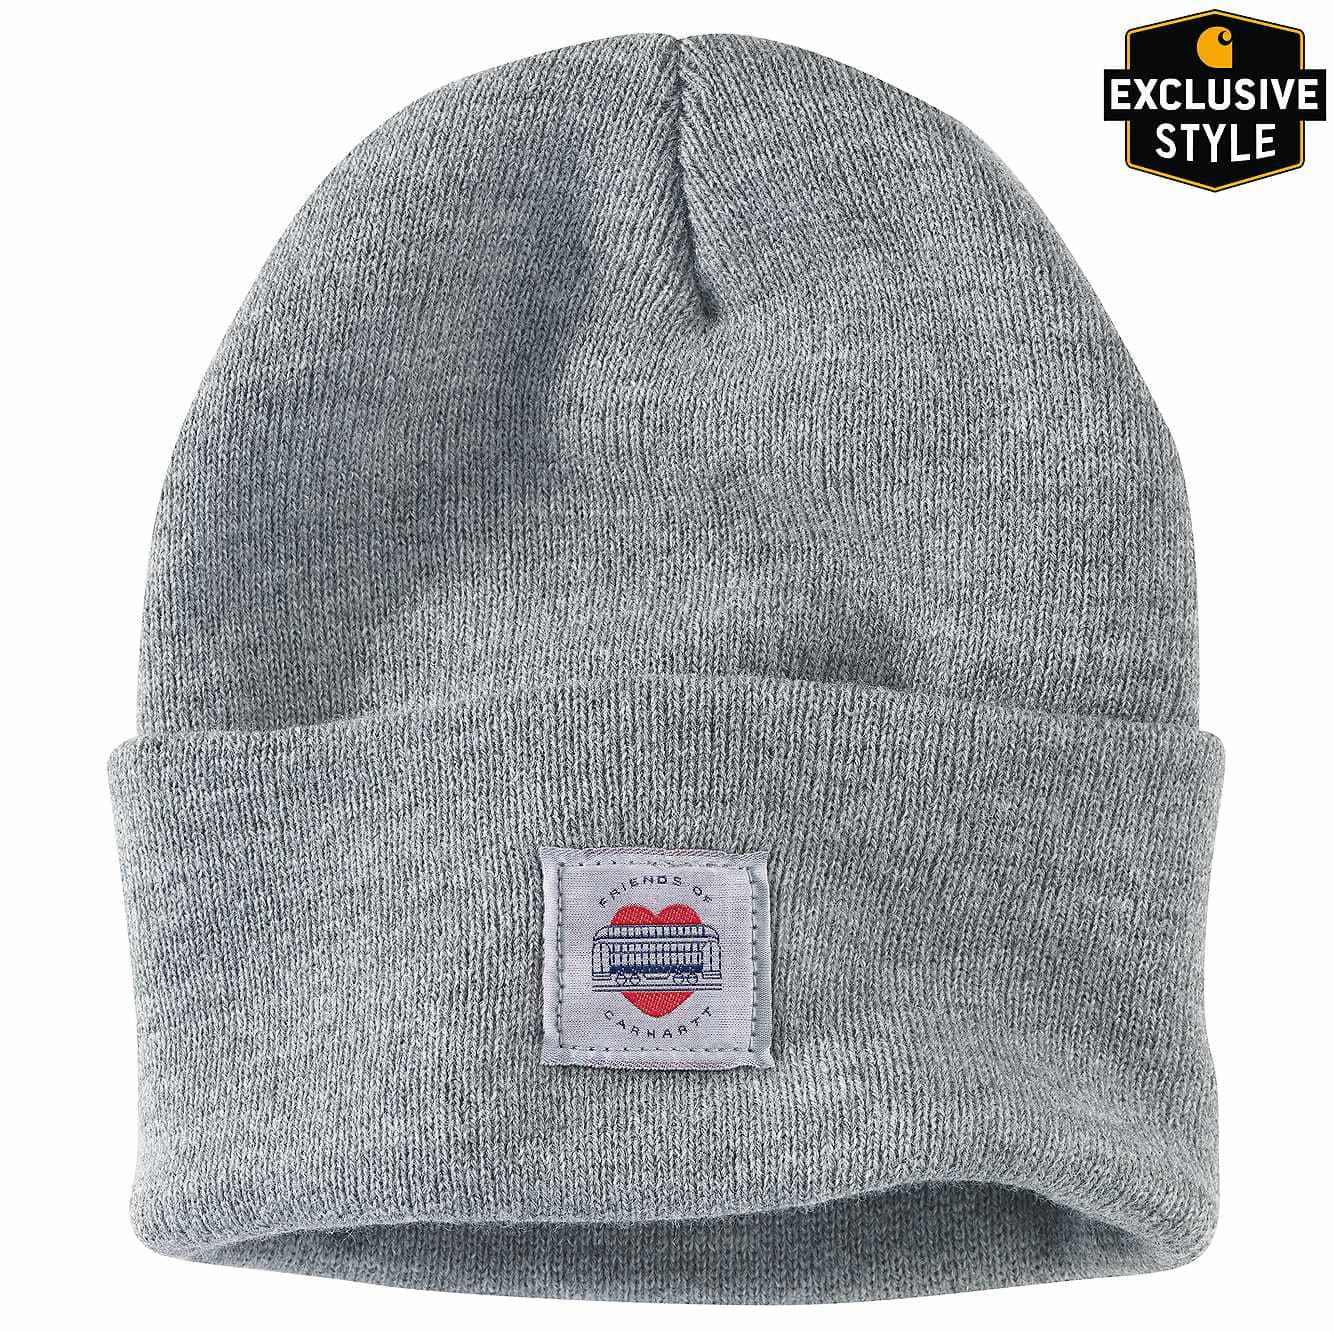 Picture of FRIENDS OF CARHARTT ACRYLIC WATCH HAT in Heather Gray